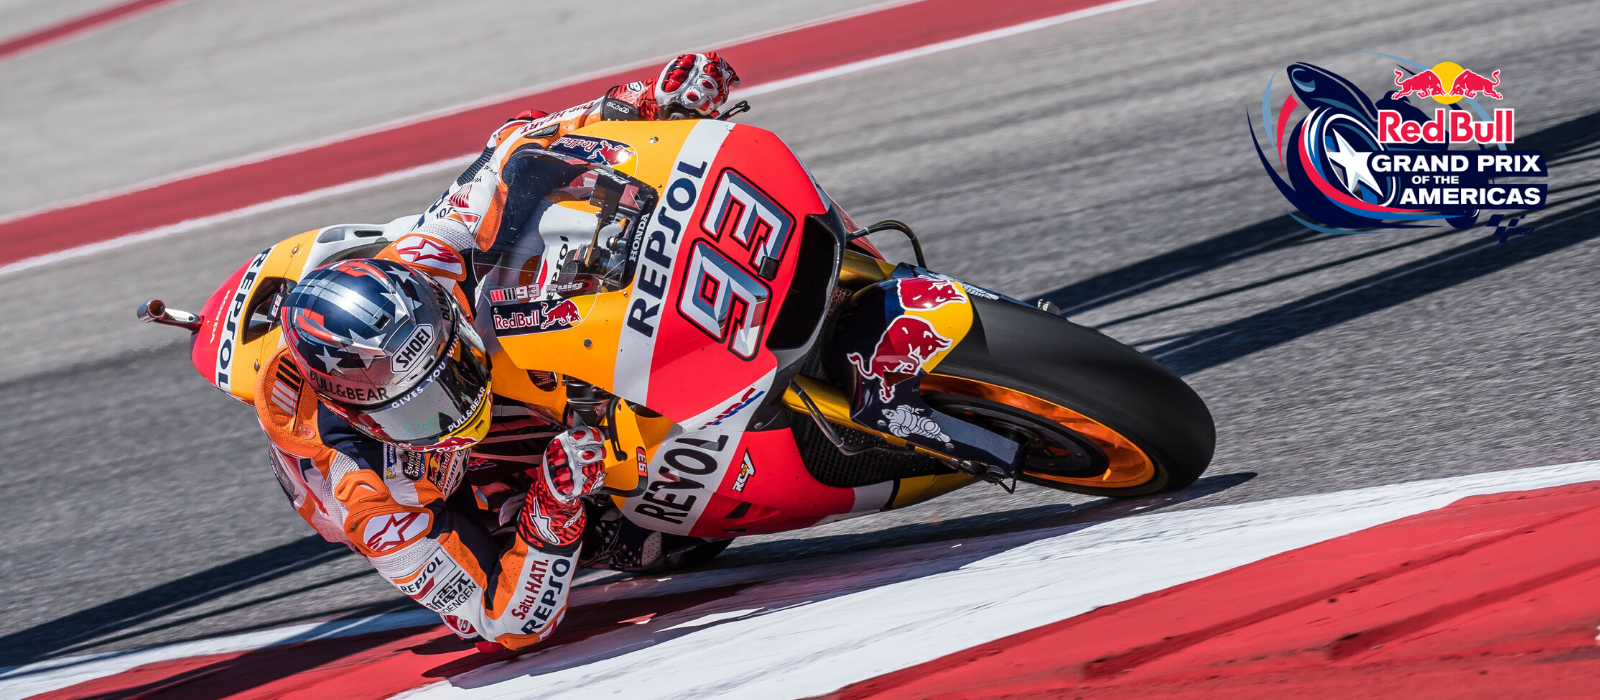 MOTOGP RED BULL GRAND PRIX OF THE AMERICAS